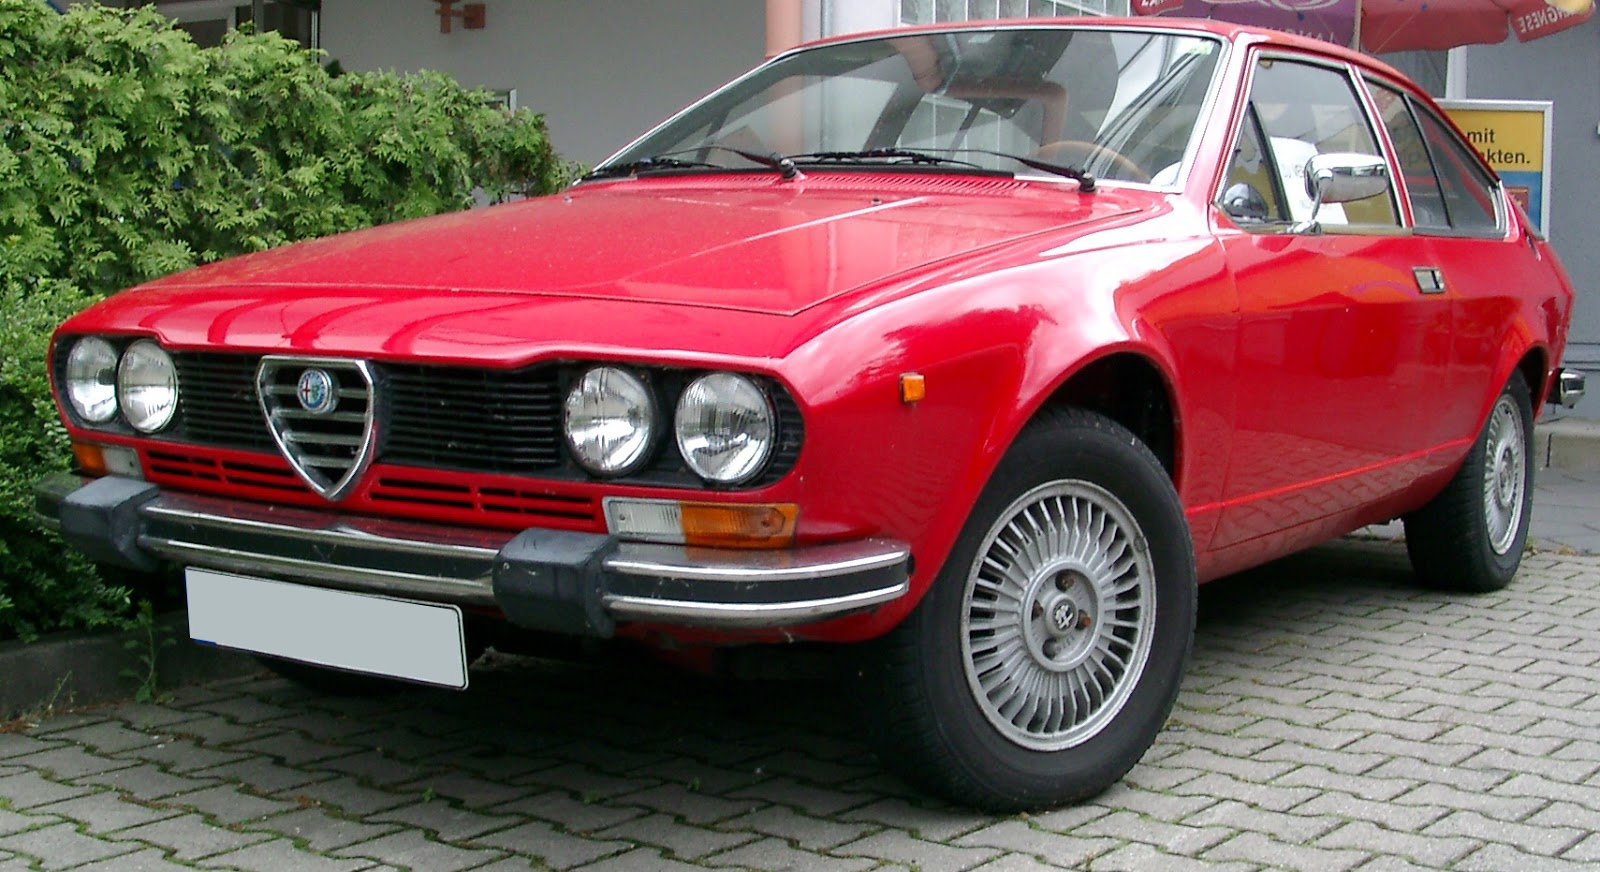 Greatest Cars: Alfa Romeo GTV